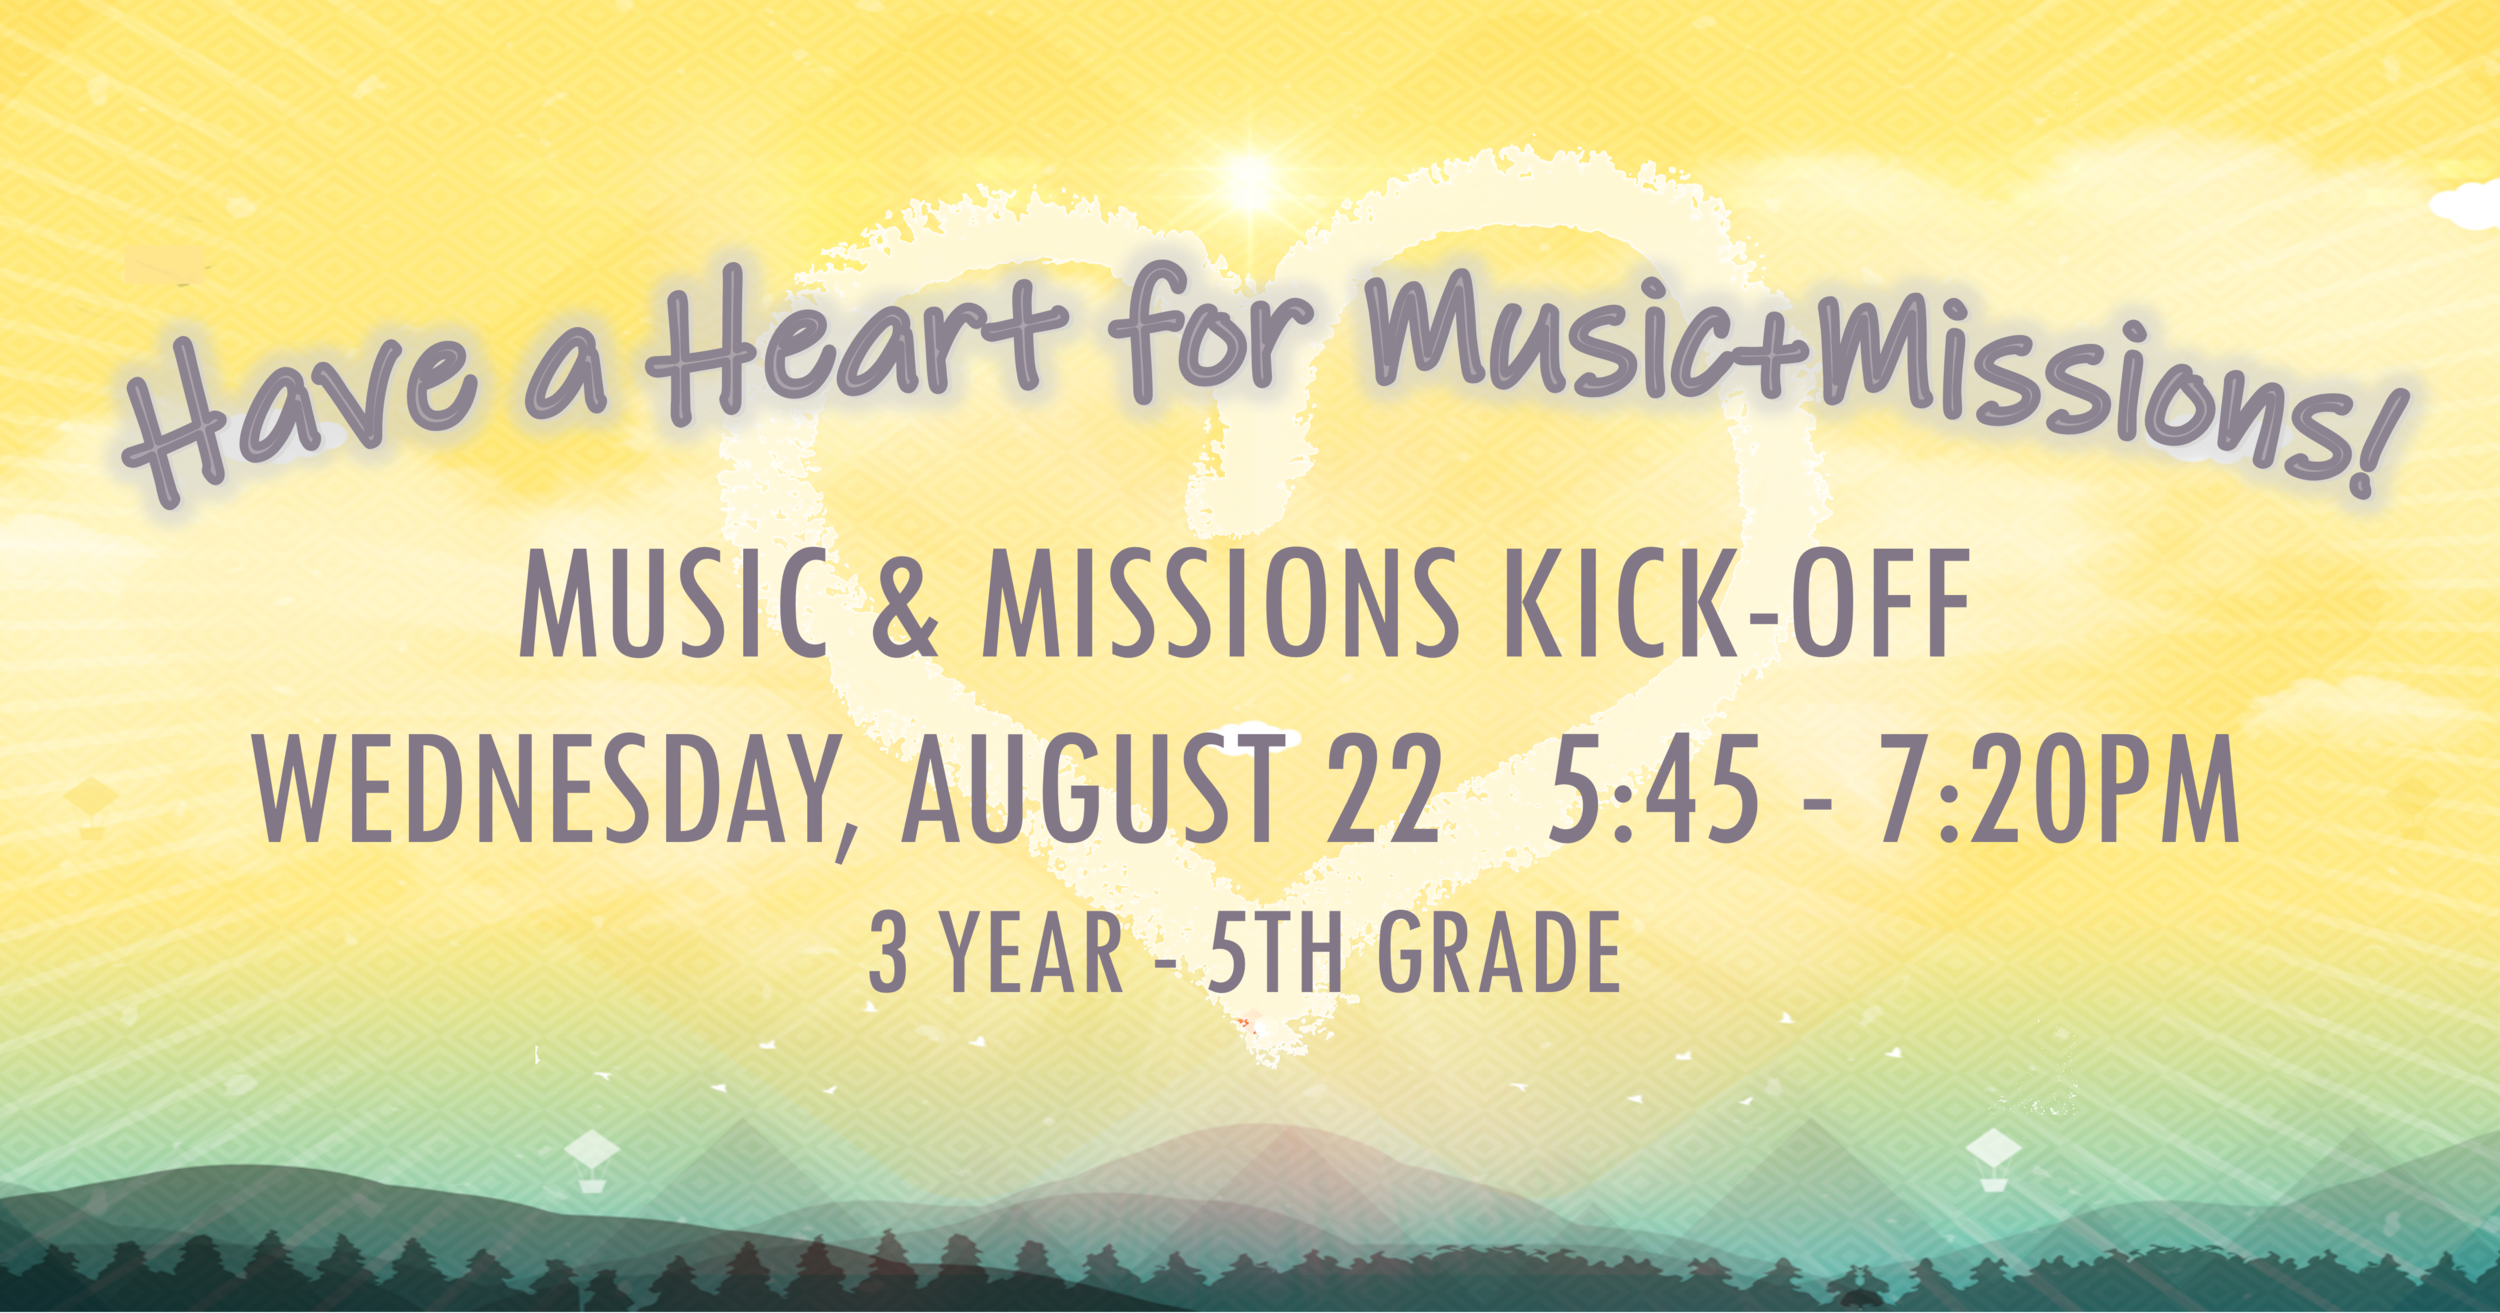 Music missions kick off facebook link 072918.png